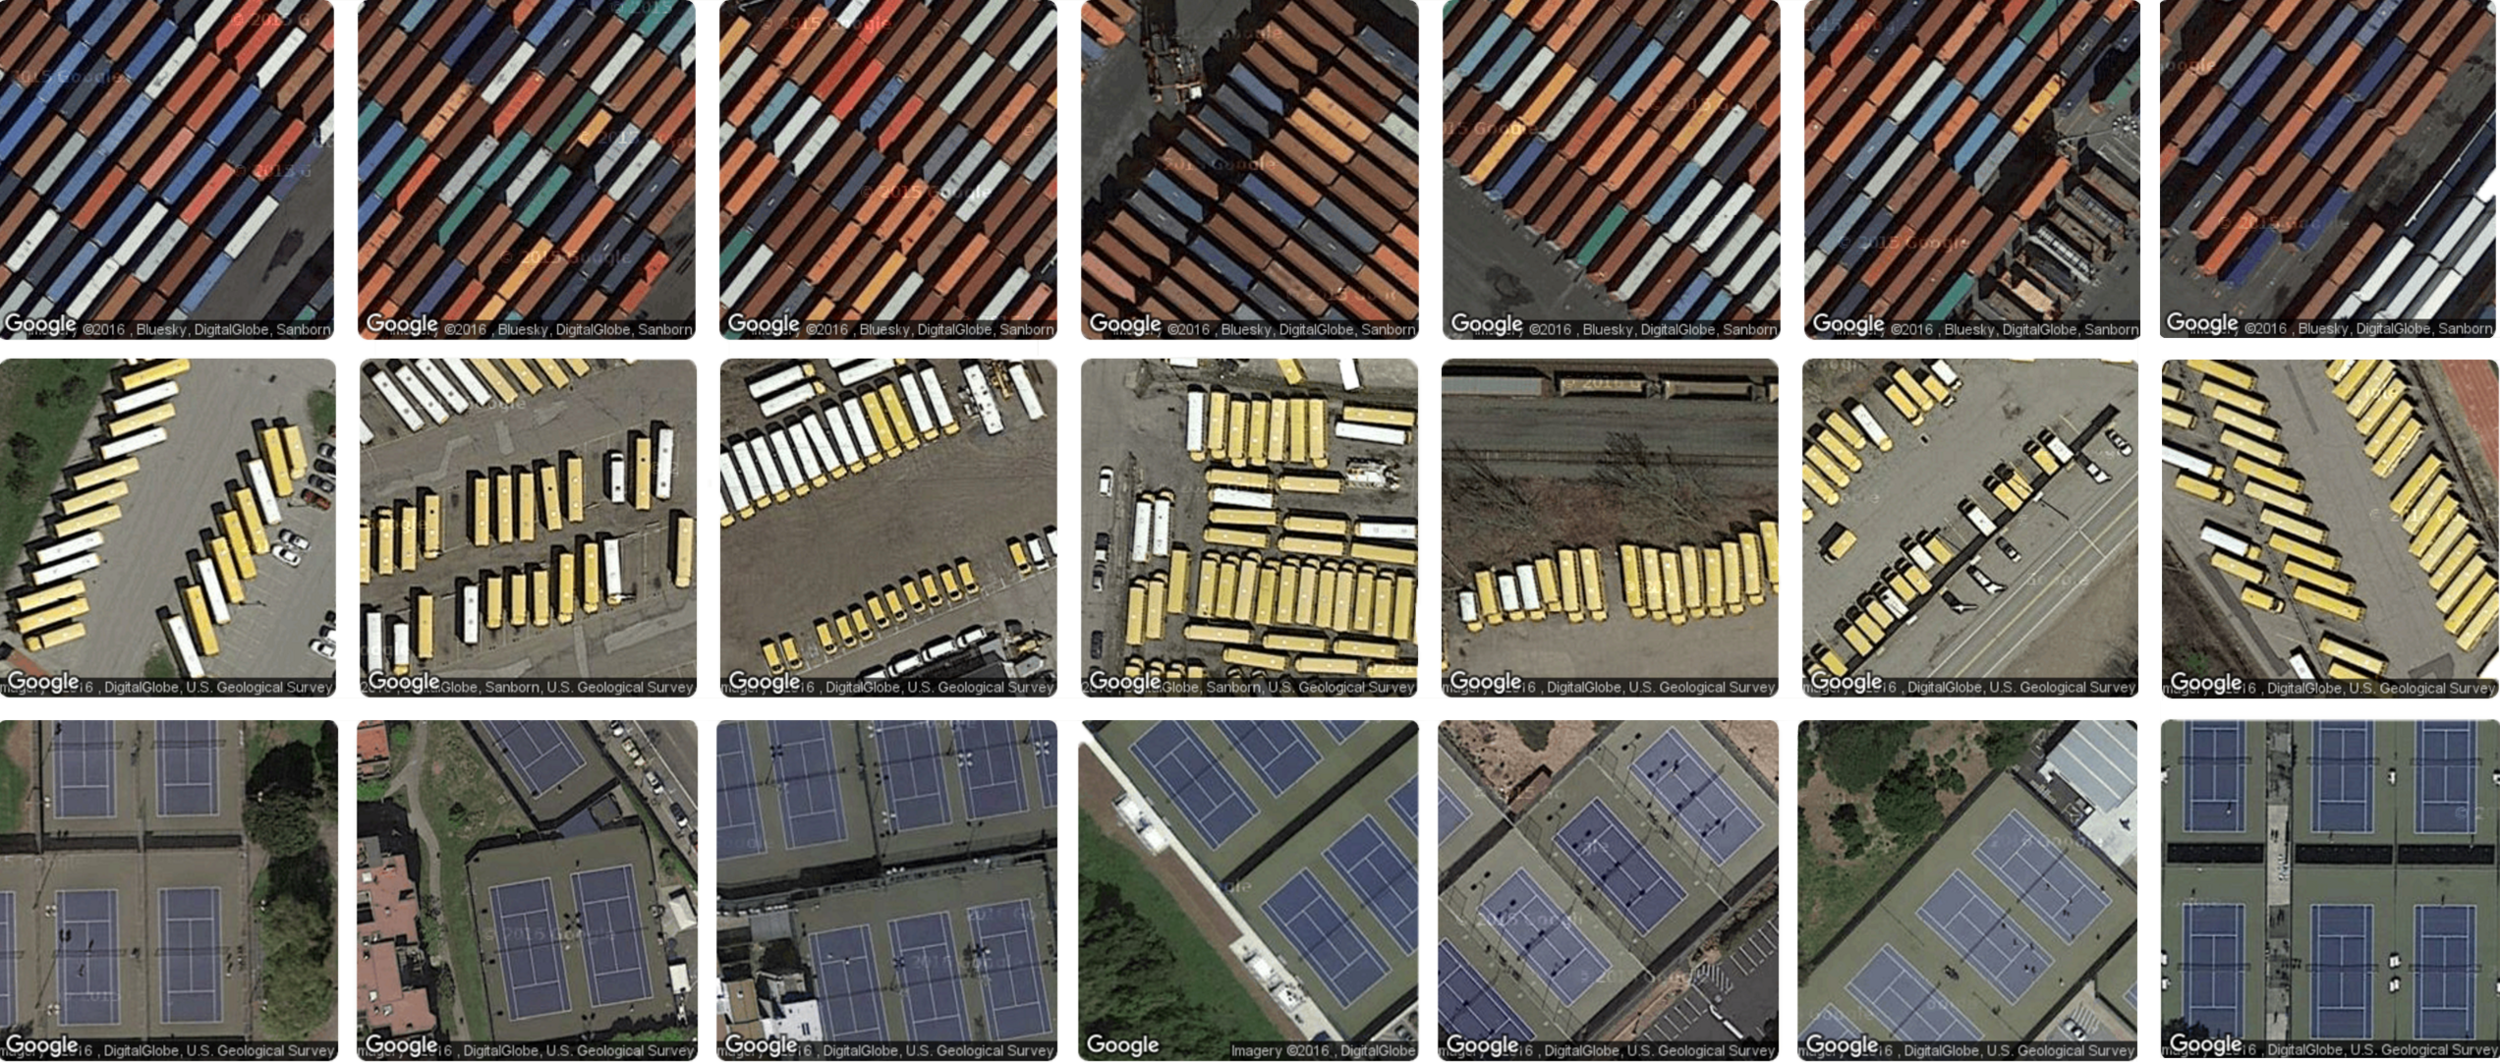 Terrapattern  A machine-learning based visual search tool for satellite imagery. UX/UI Design | Web Development |Data Collection |Mapping |Machine Learning